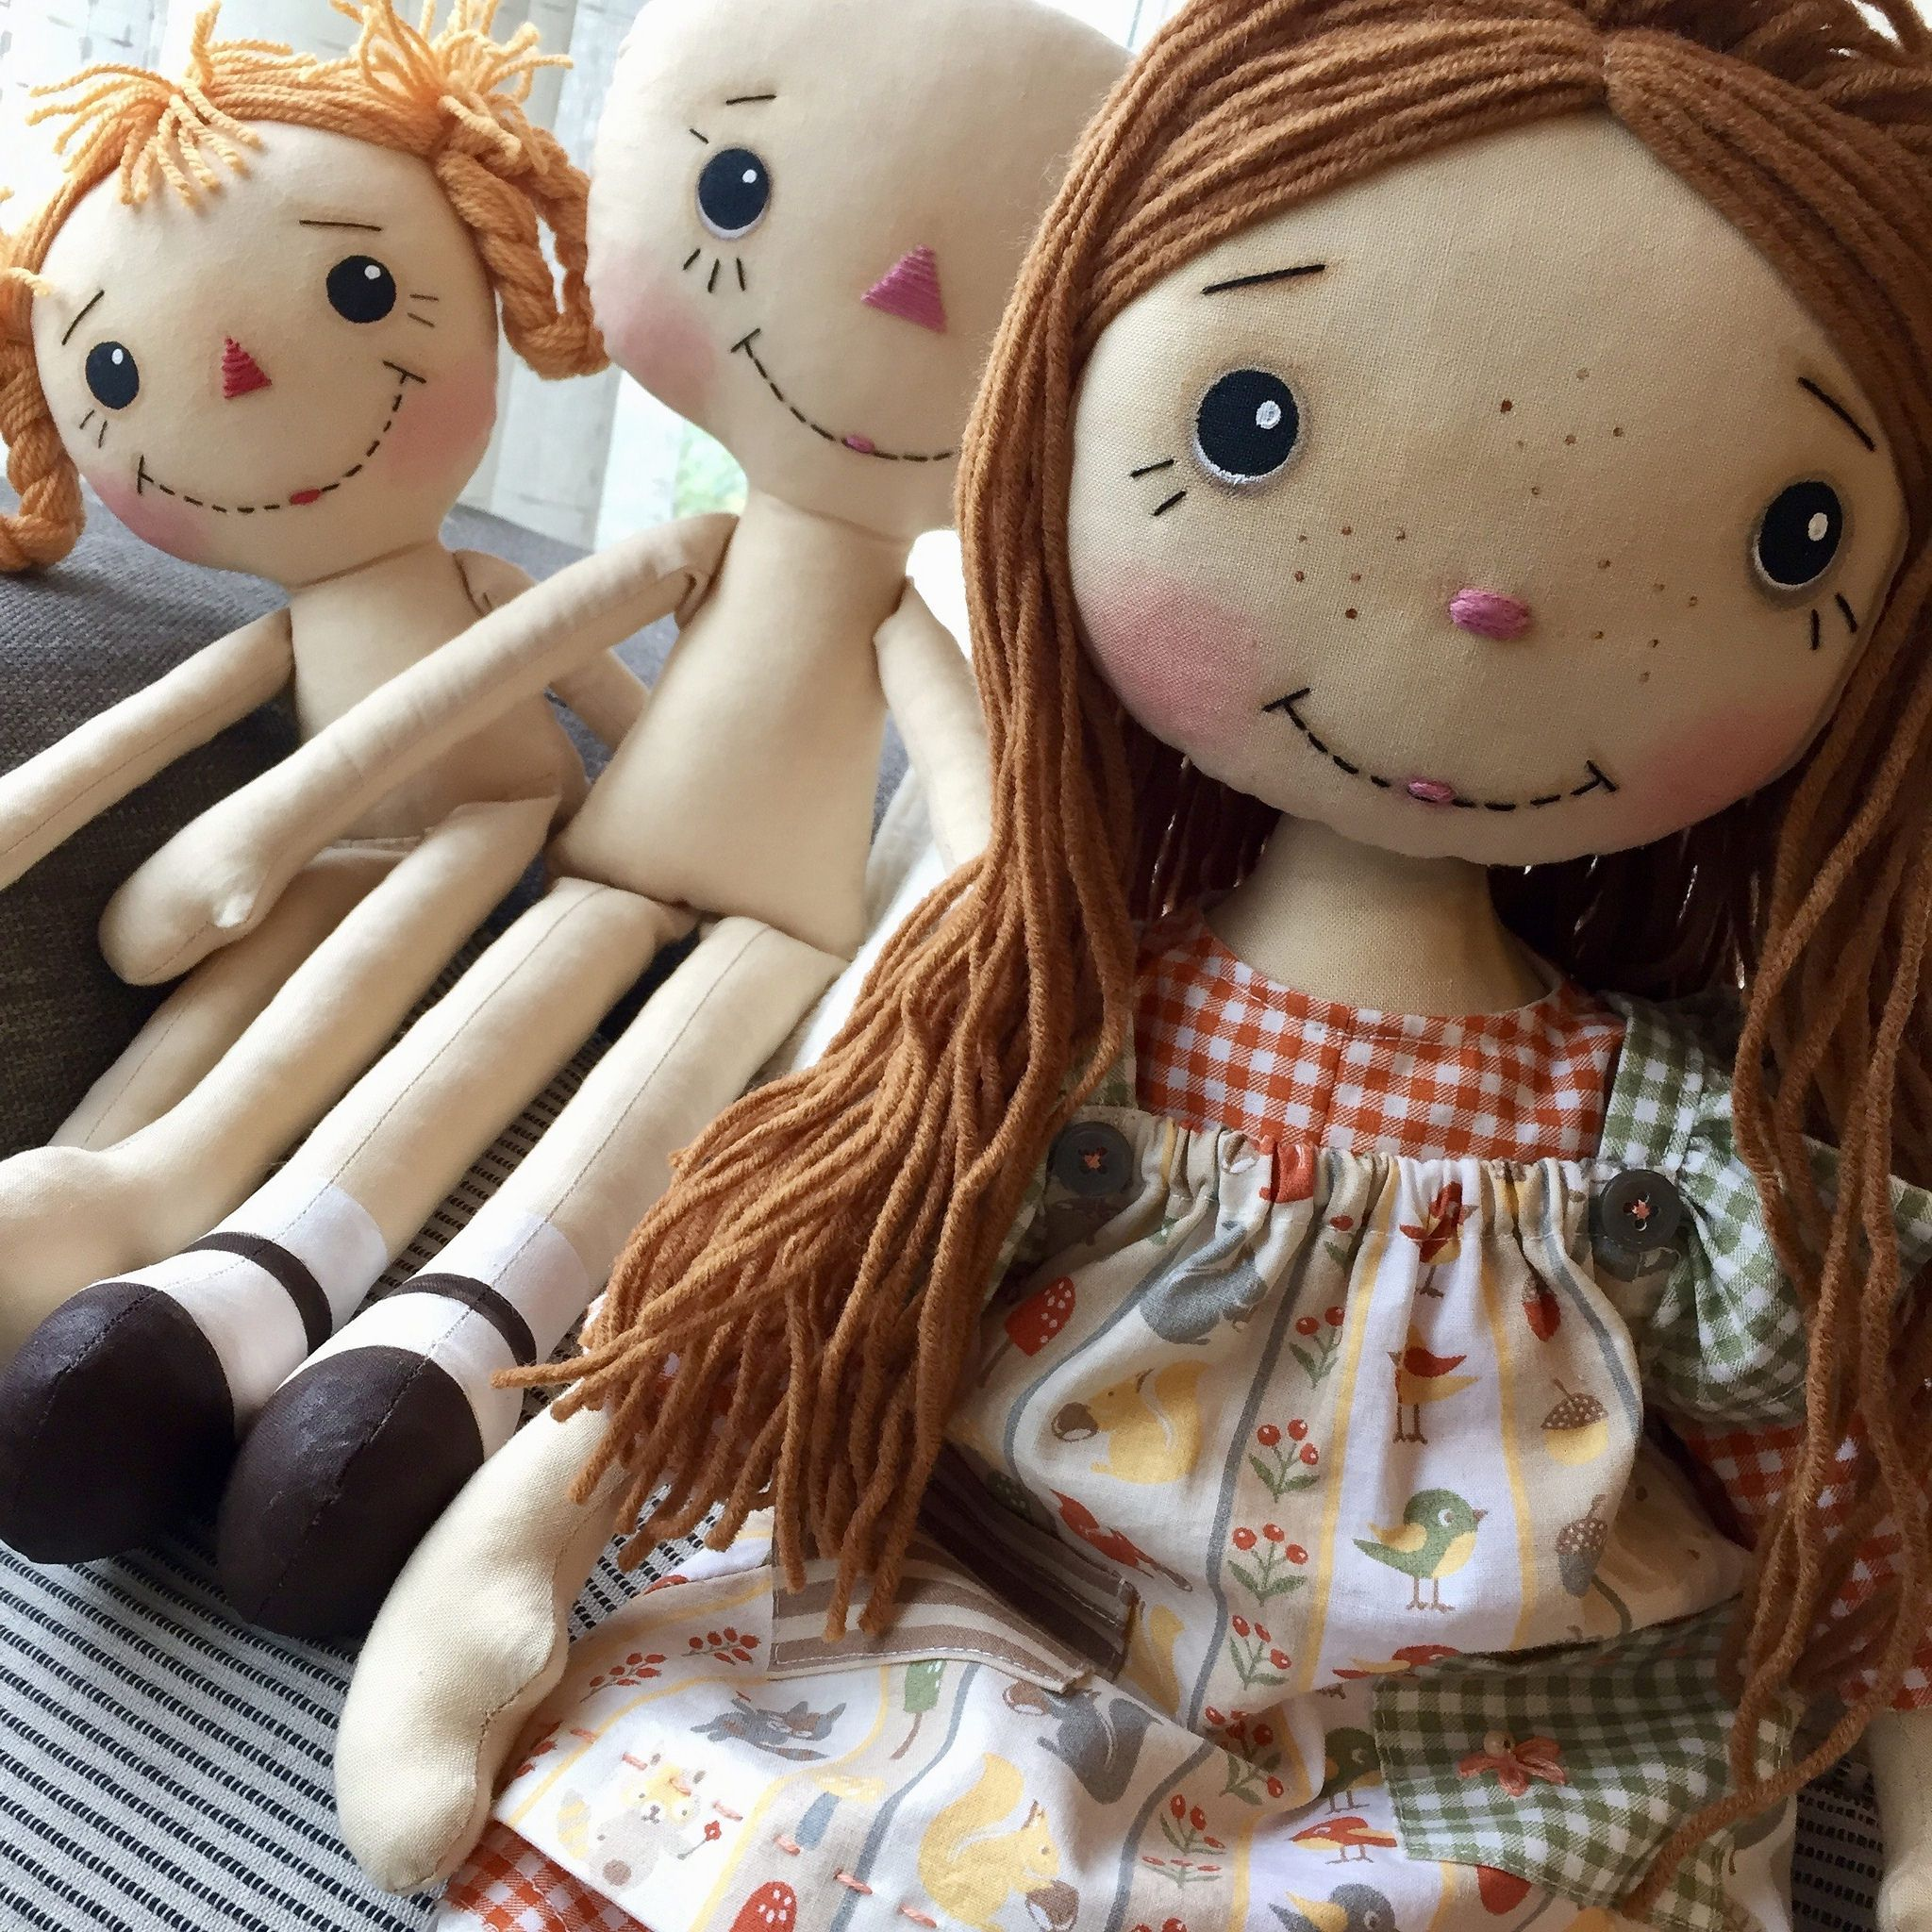 happy doll making day #dollmaking